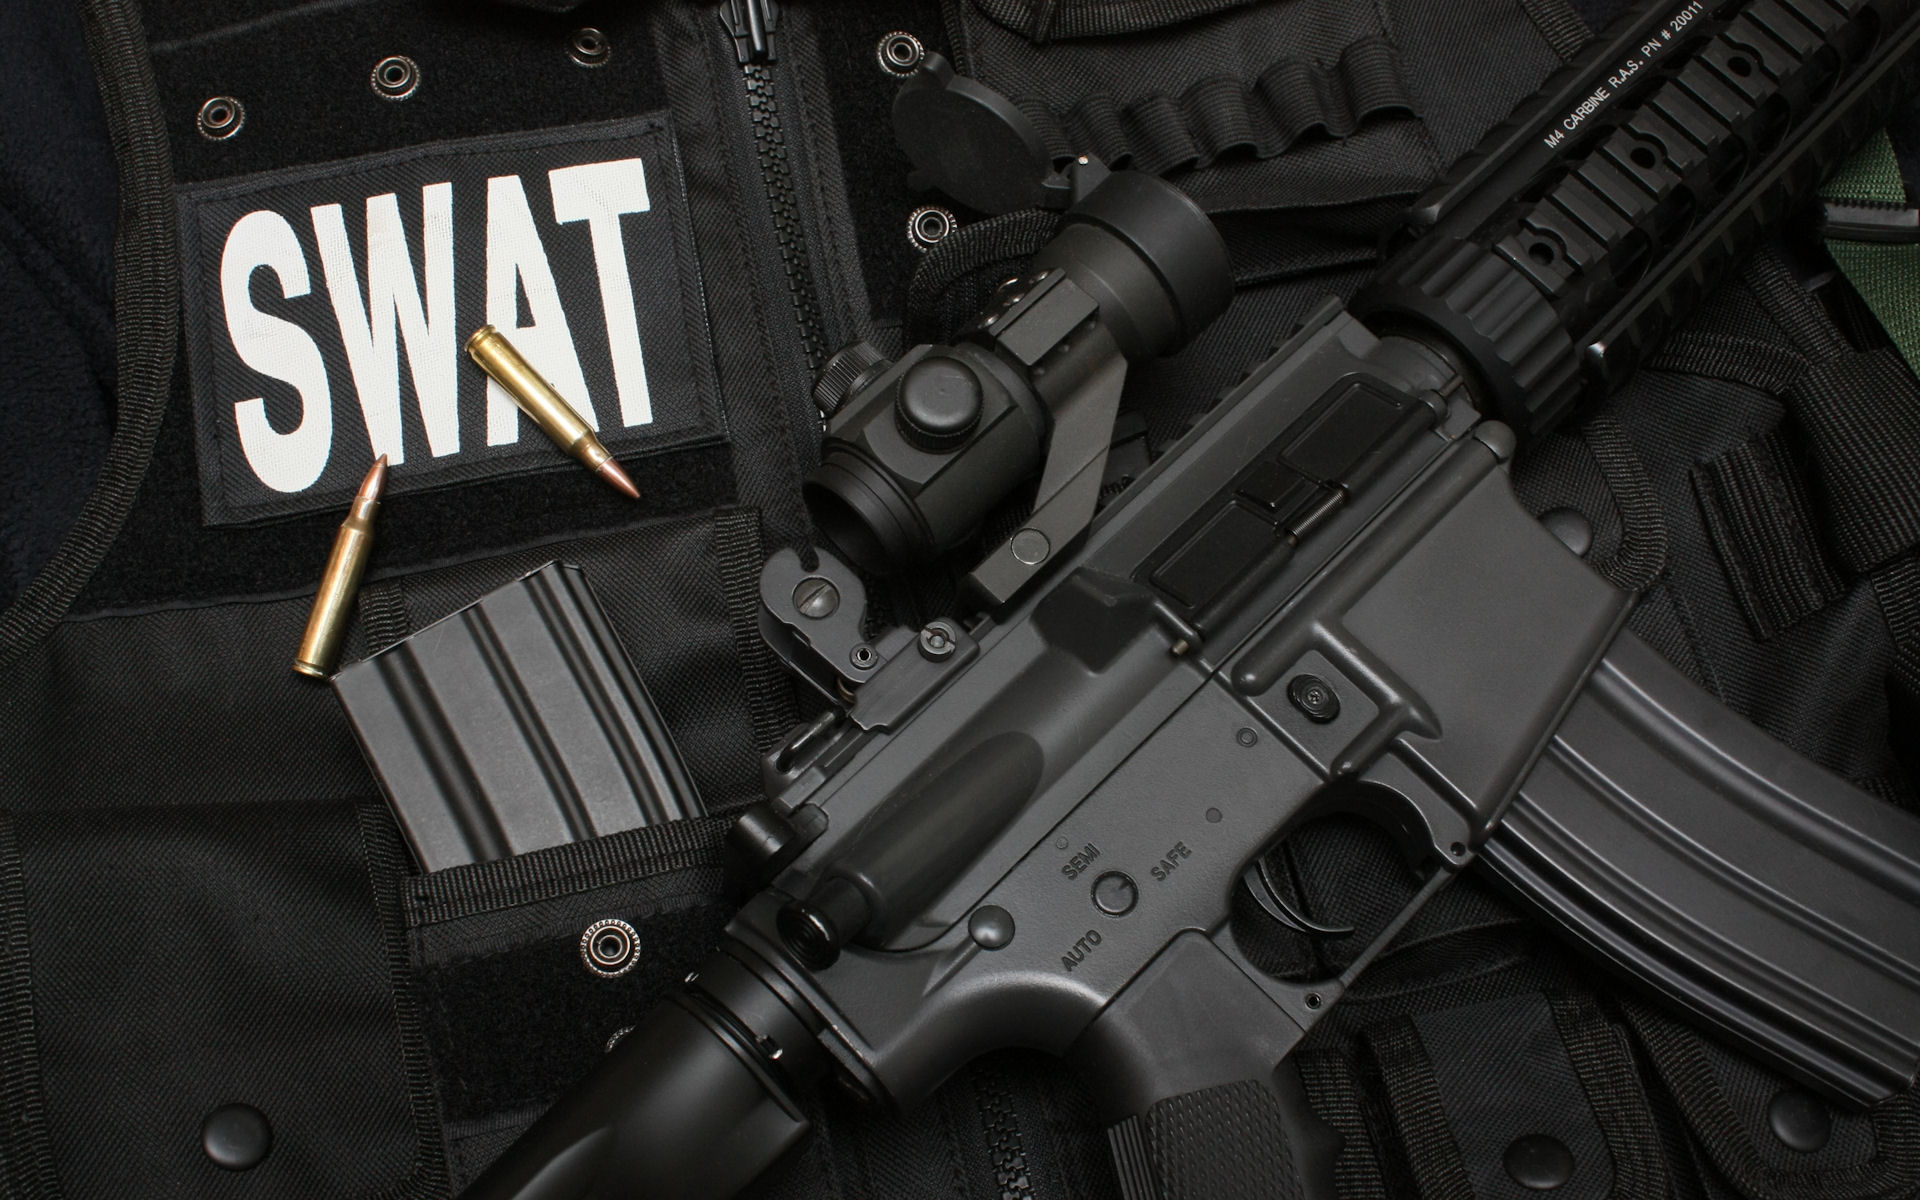 Top Wallpapers 2016: Cool Swat Wallpapers, Awesome Cool Swat Pics ...